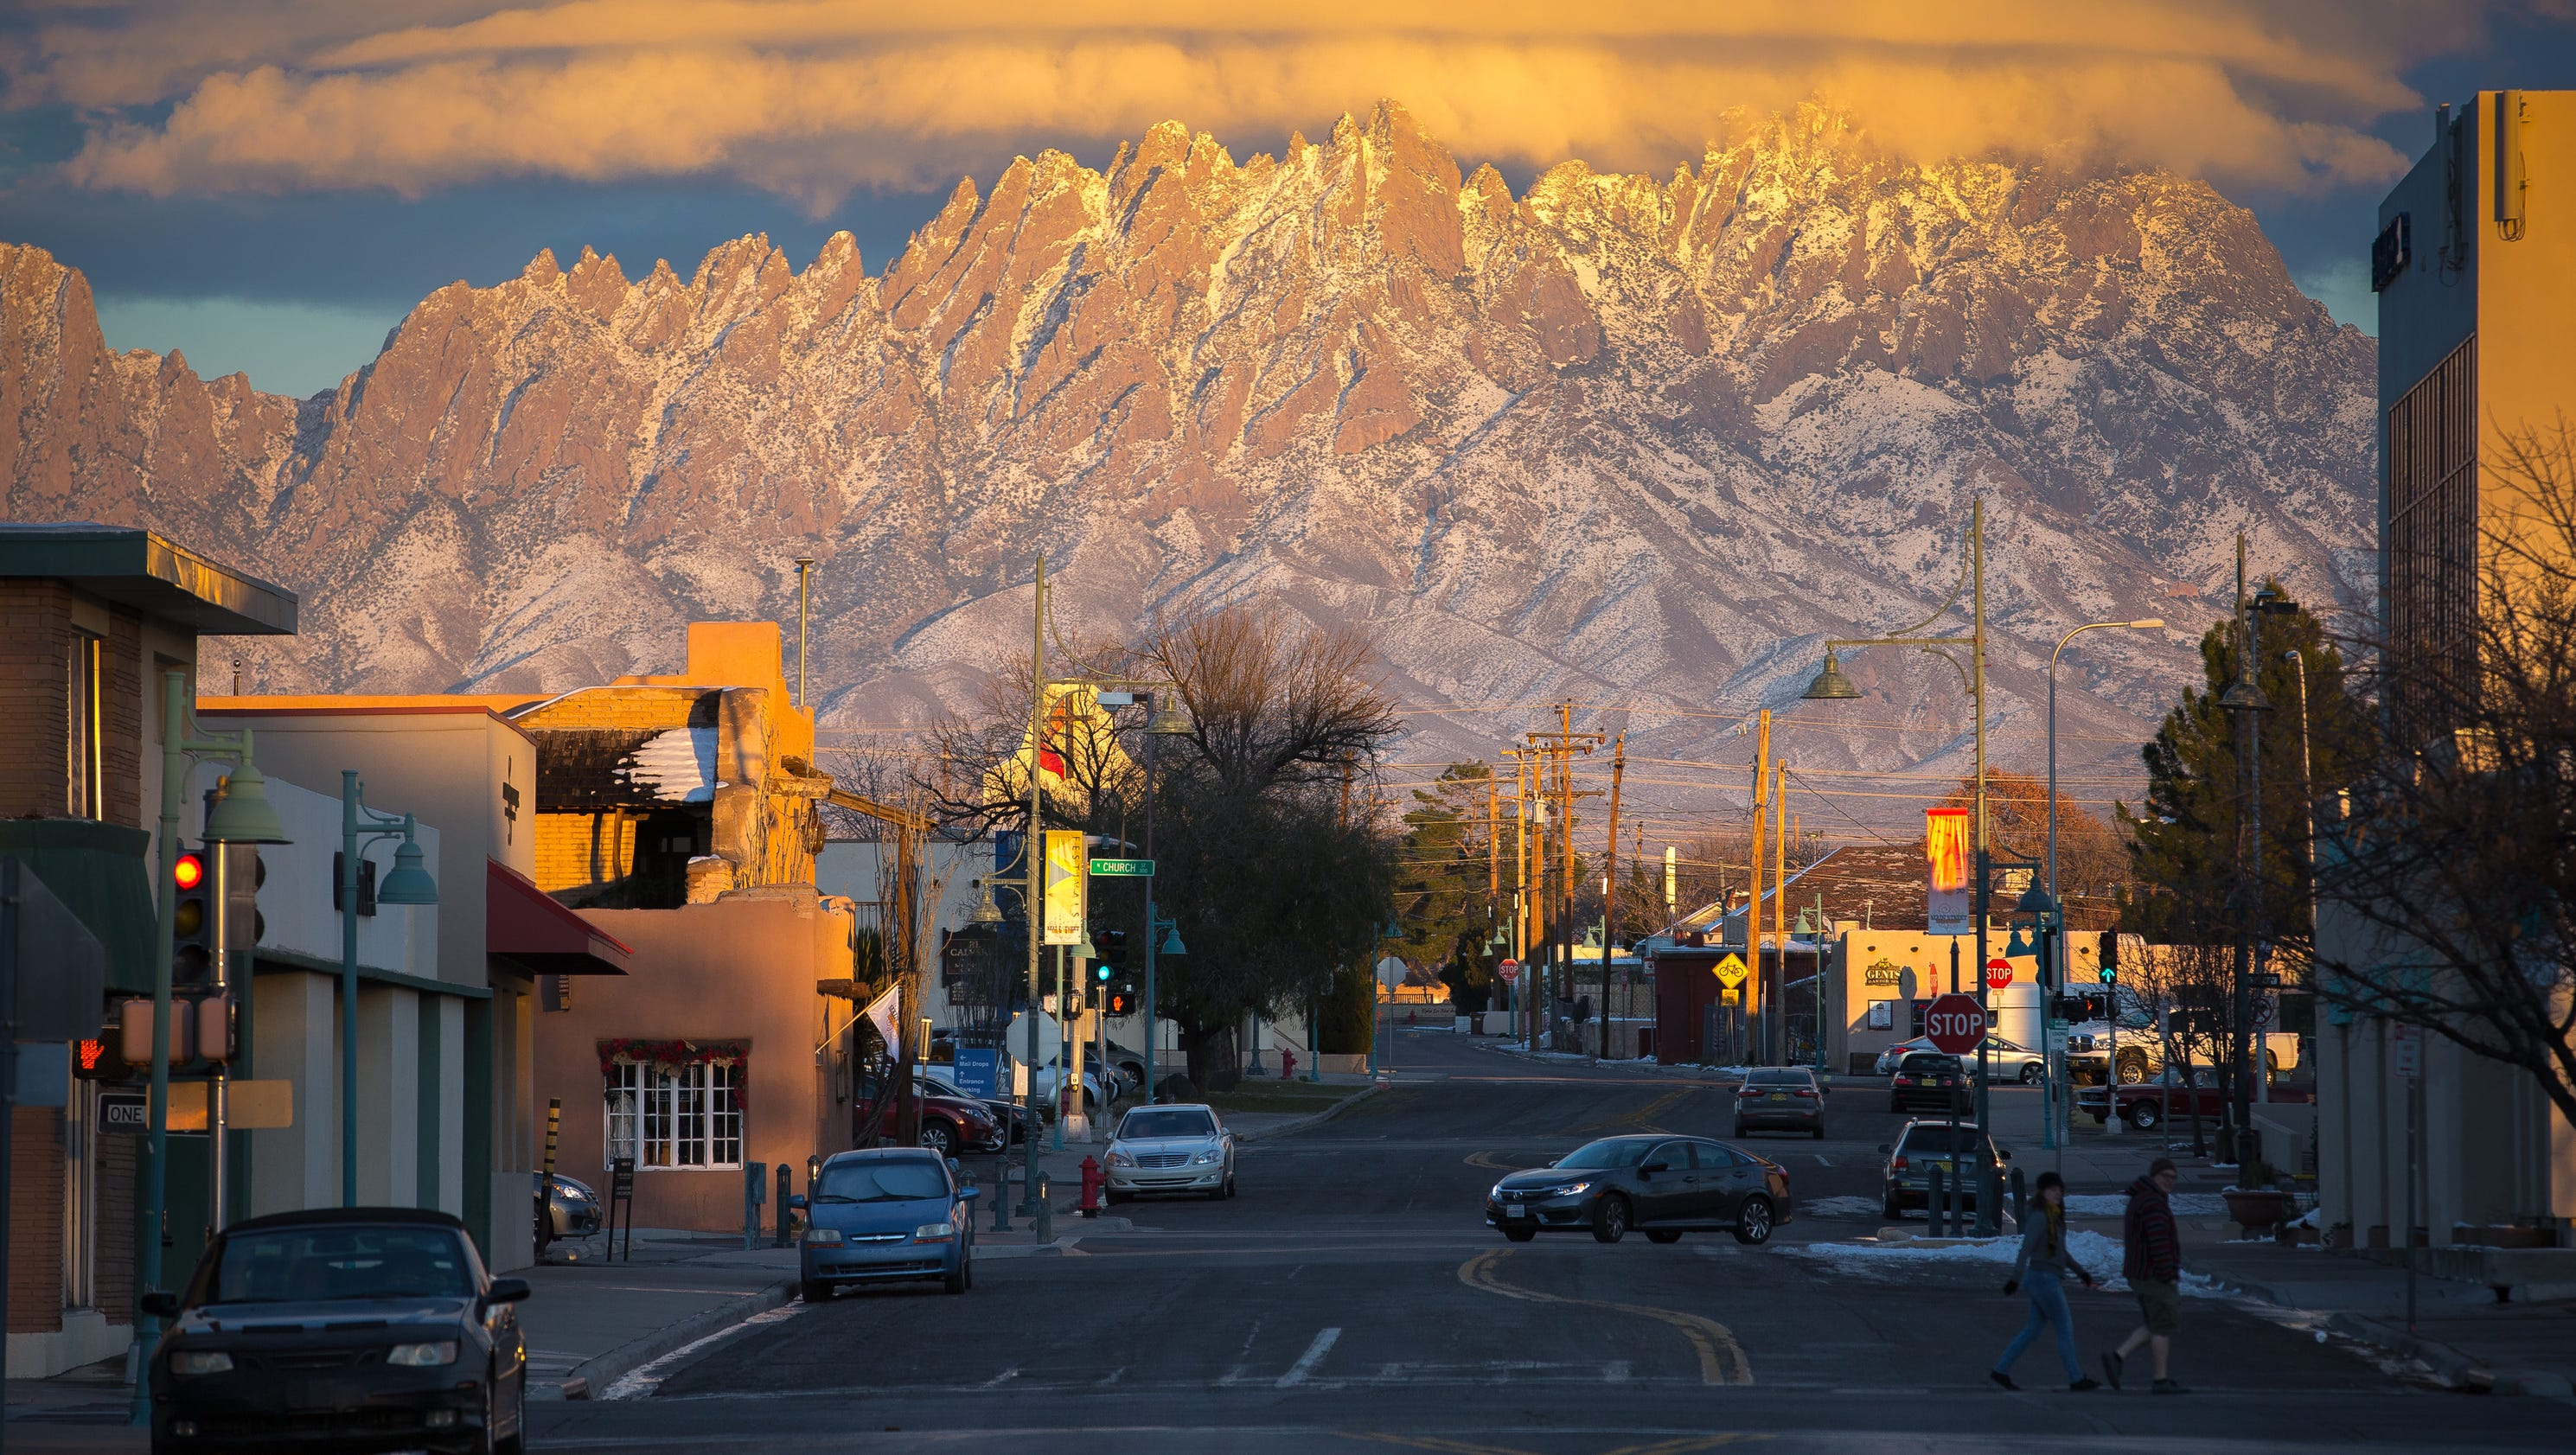 Las Cruces makes most overlooked cities list